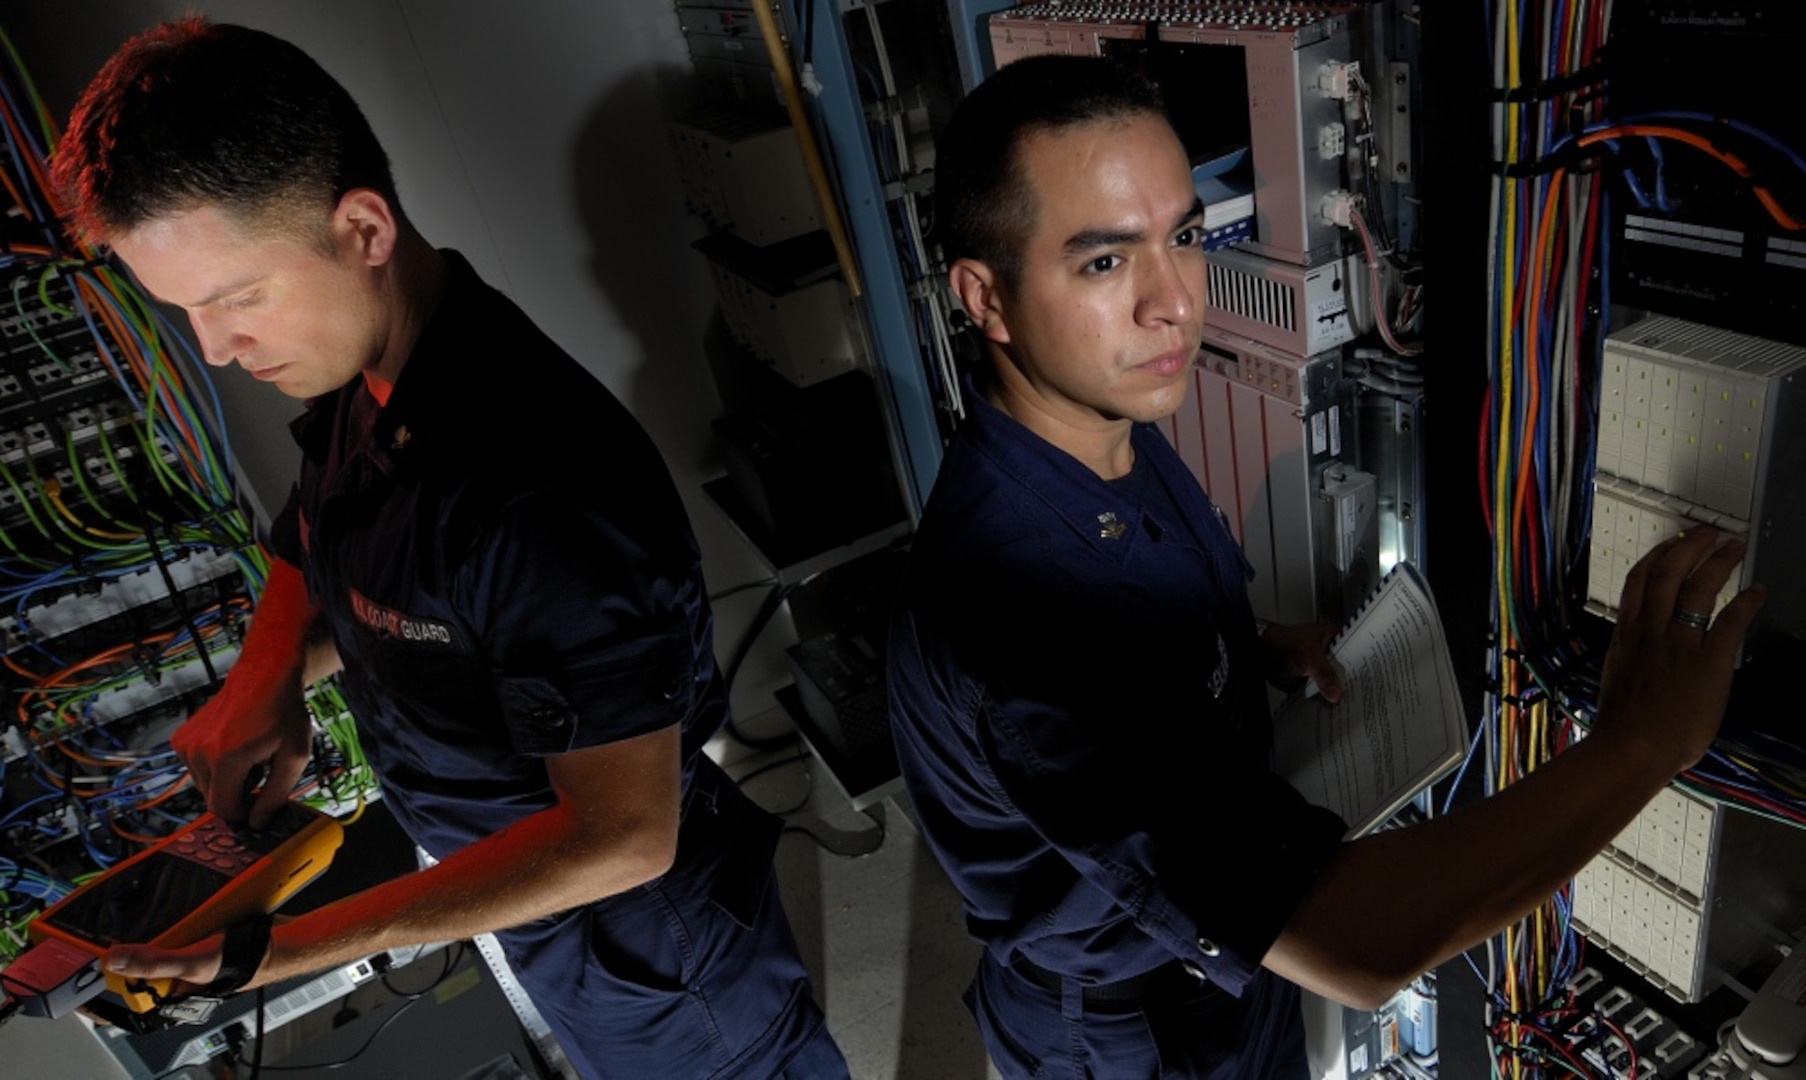 Coast Guard Petty Officer 2nd Class Jason Guard and Petty Officer 2nd Class Carlos Alexander, in a server room located at Coast Guard Sector New York on Fort Wadsworth, Staten Island, New York, June, 26, 2007. Coast Guard information systems technician's are responsible for establishing and maintaining Coast Guard systems. U.S. Coast Guard photo by Chief Petty Officer Tom Sperduto